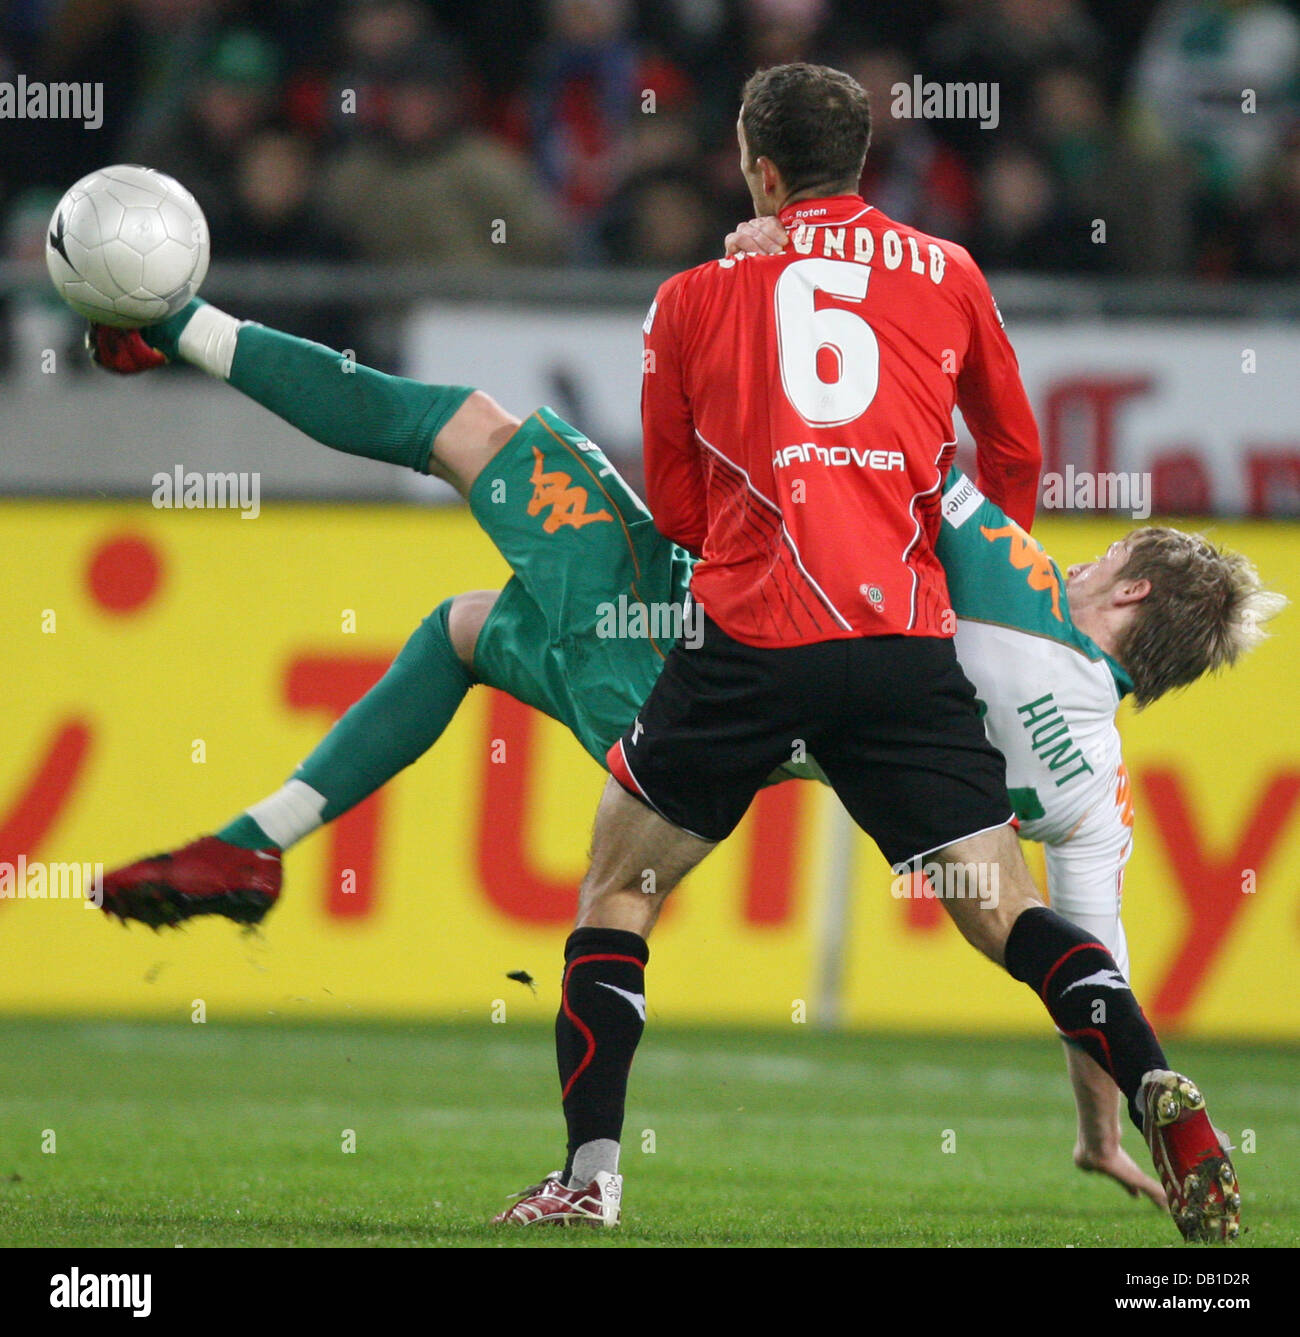 Steven Cerundolo (front) of Hanover vies for the ball with Aaron Hunt of Bremen during the Bundesliga match Hanover Stock Photo